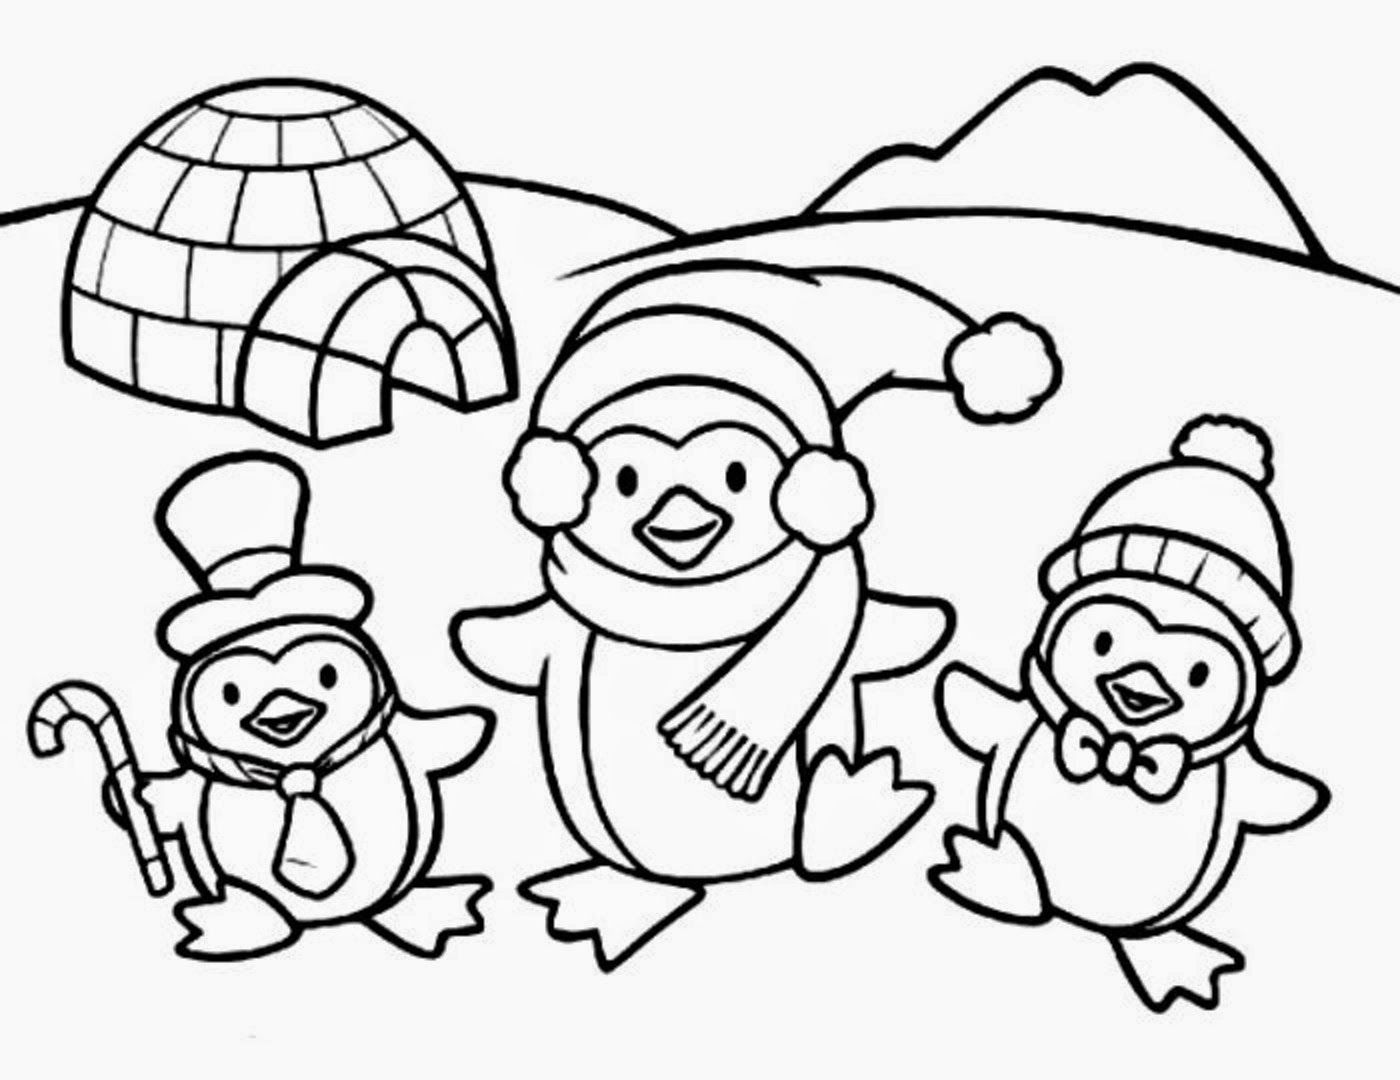 Christmas Penguin Coloring Pages Printable With Cute Baby Colour Drawing HD Wallpaper Penquins Pinterest